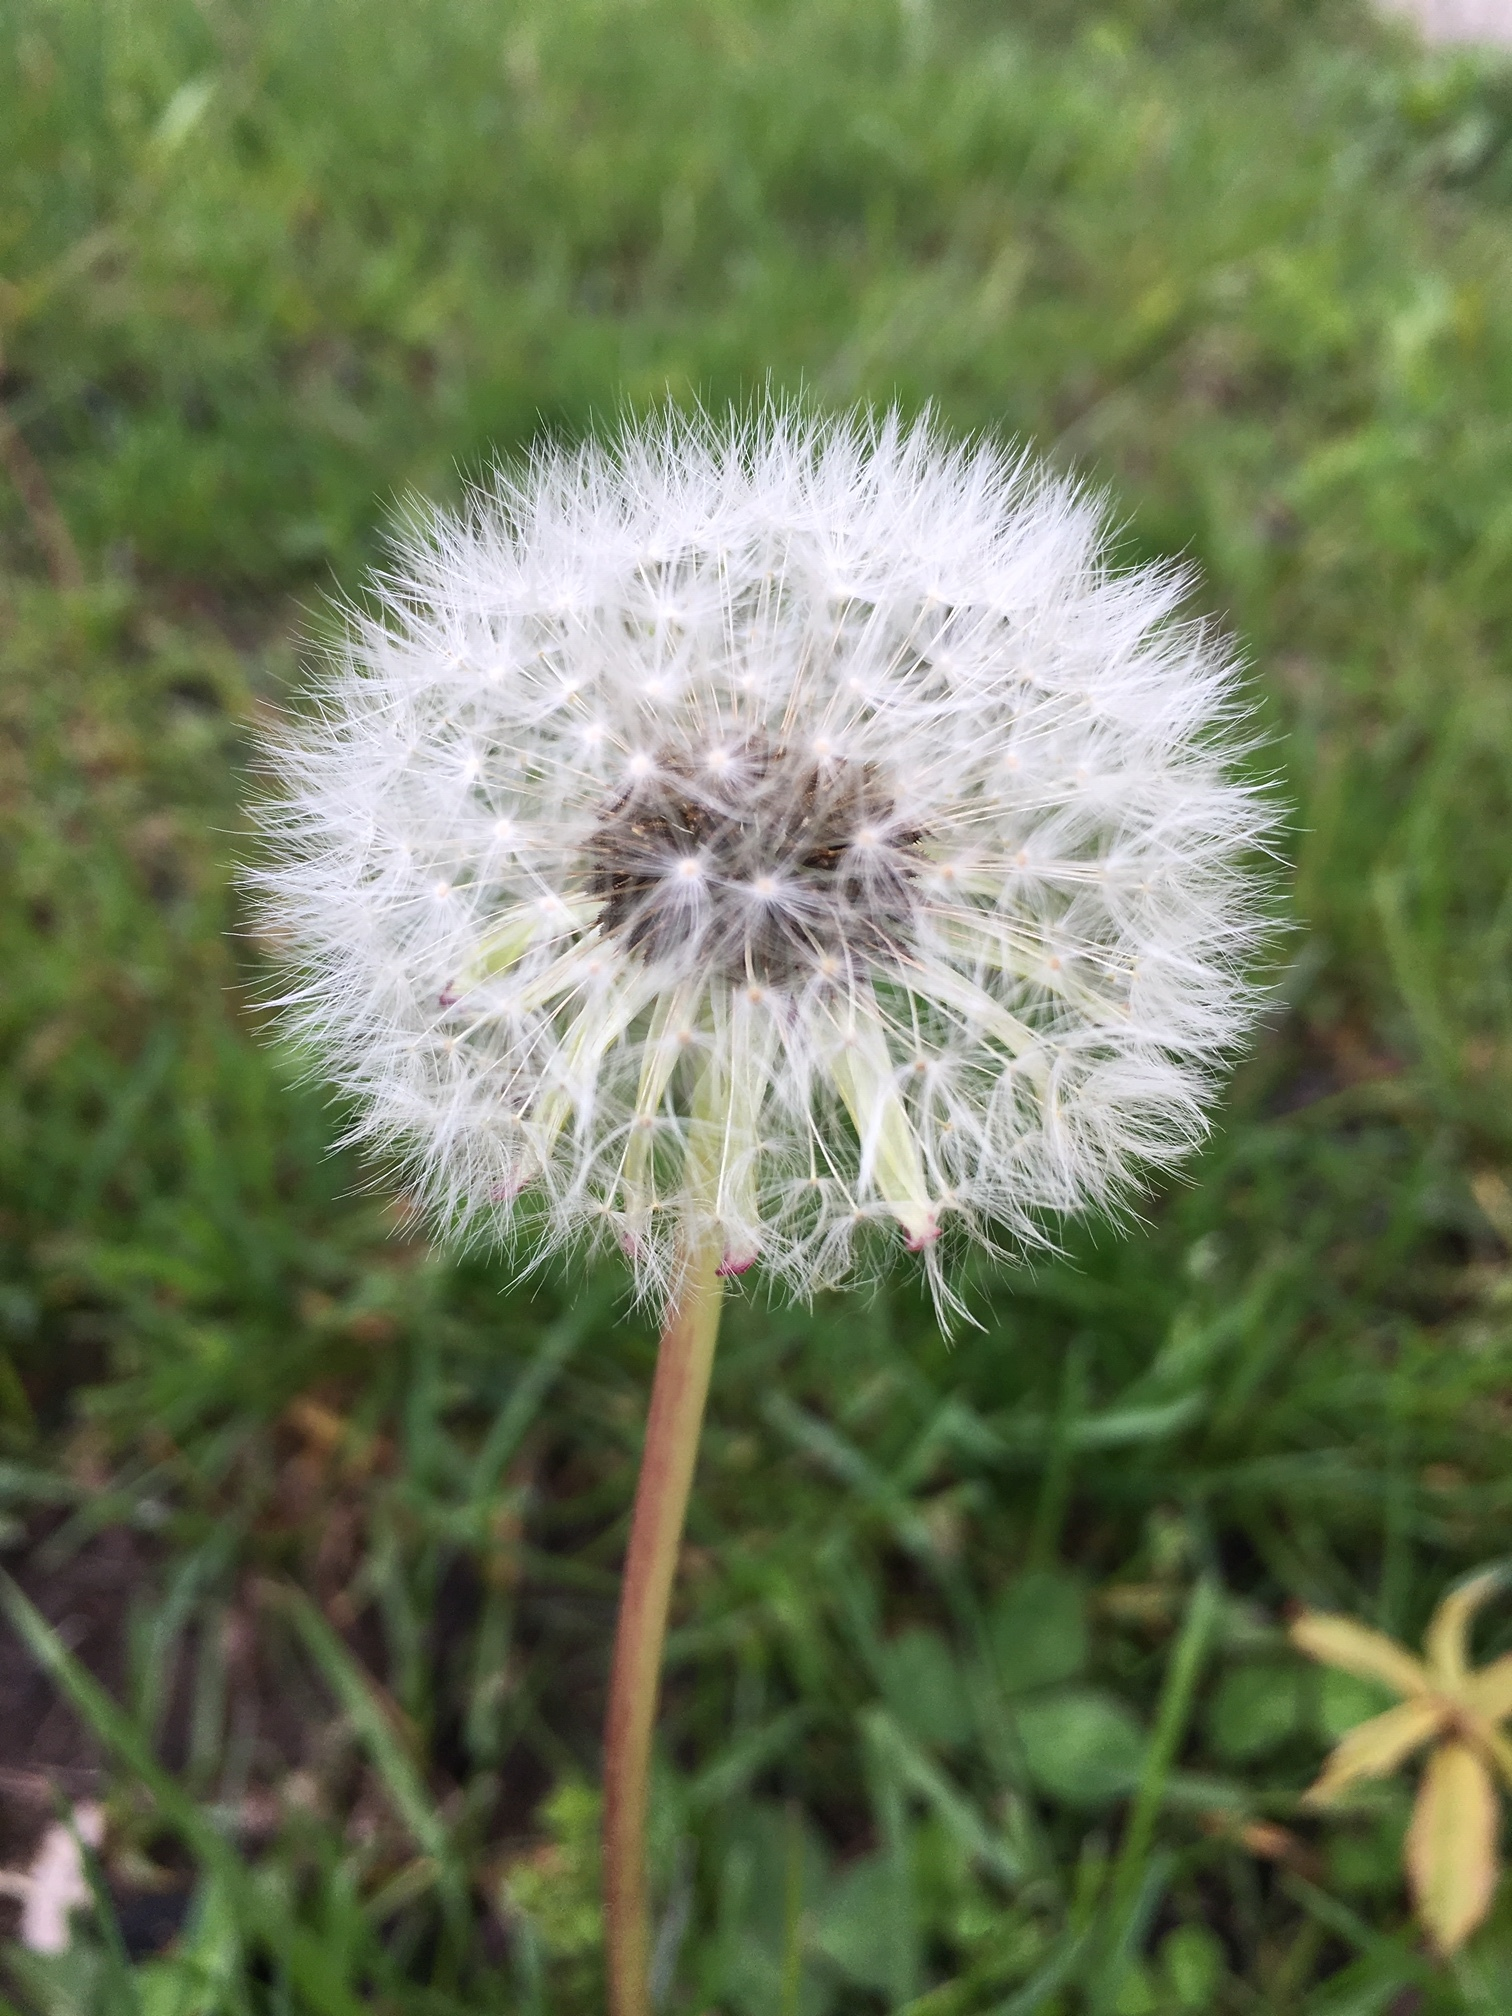 I didn't see too many dandelions this month, but I did see some dandy fluffs.